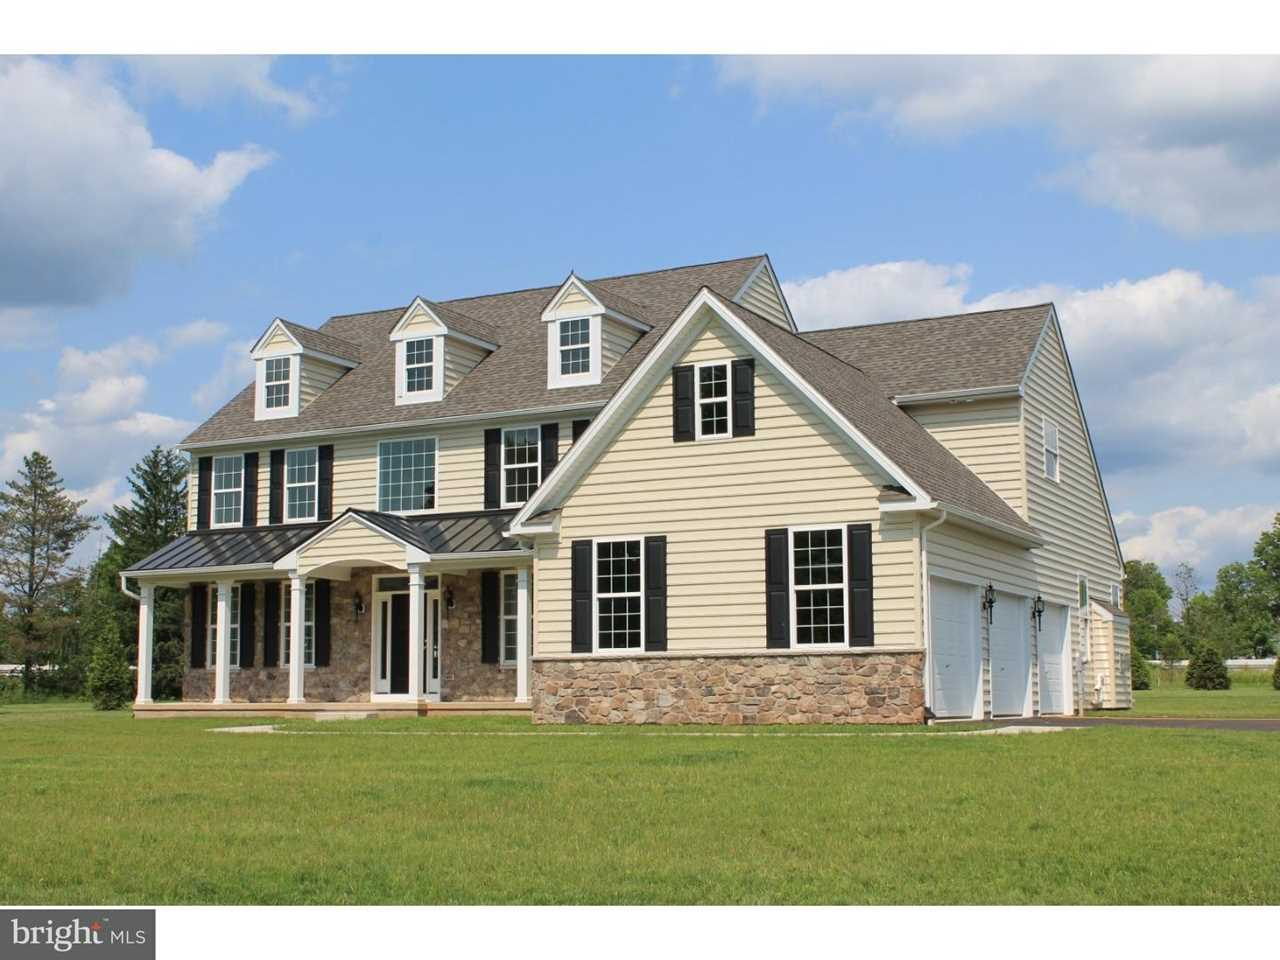 2210 Weber Rd, Lansdale, PA 19490 | MLS 1001315374 Photo 1